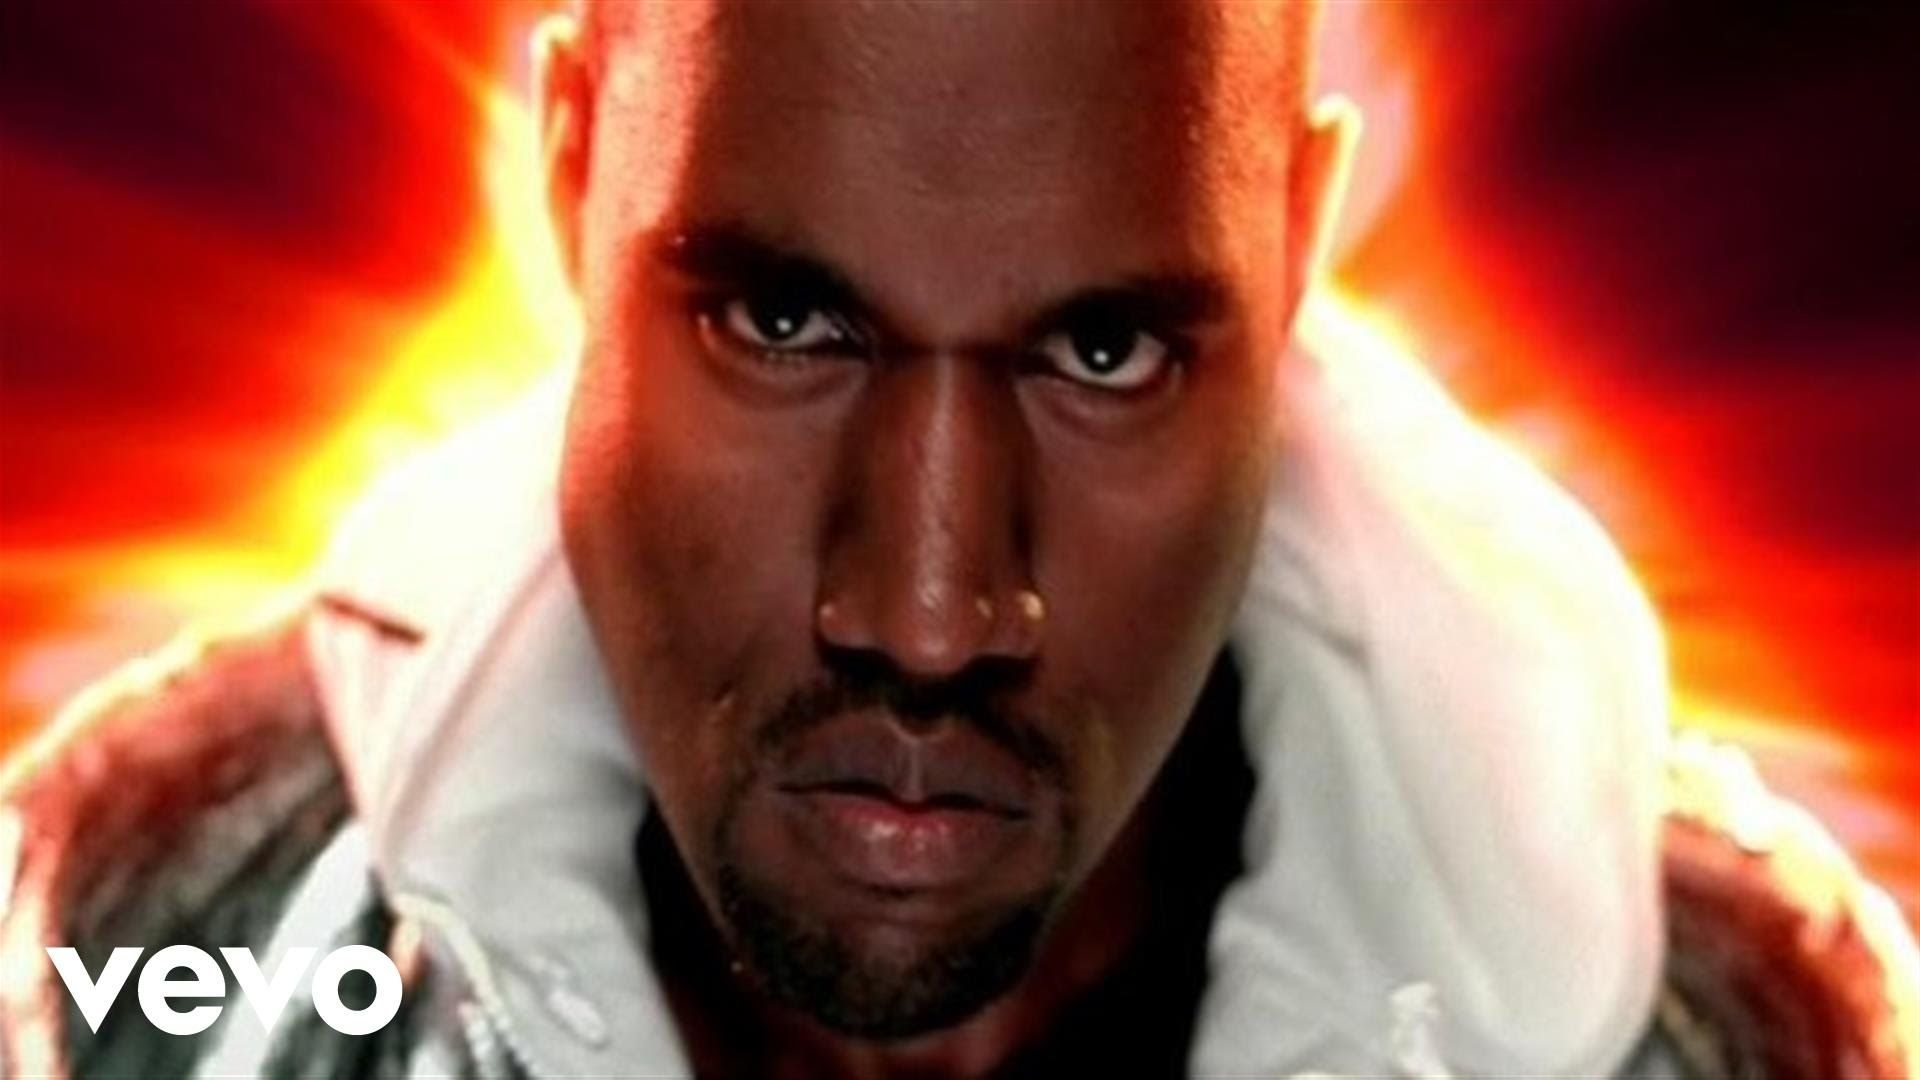 Kanye West Stronger Youtube Kanye West Stronger Kanye West Songs Best Workout Songs